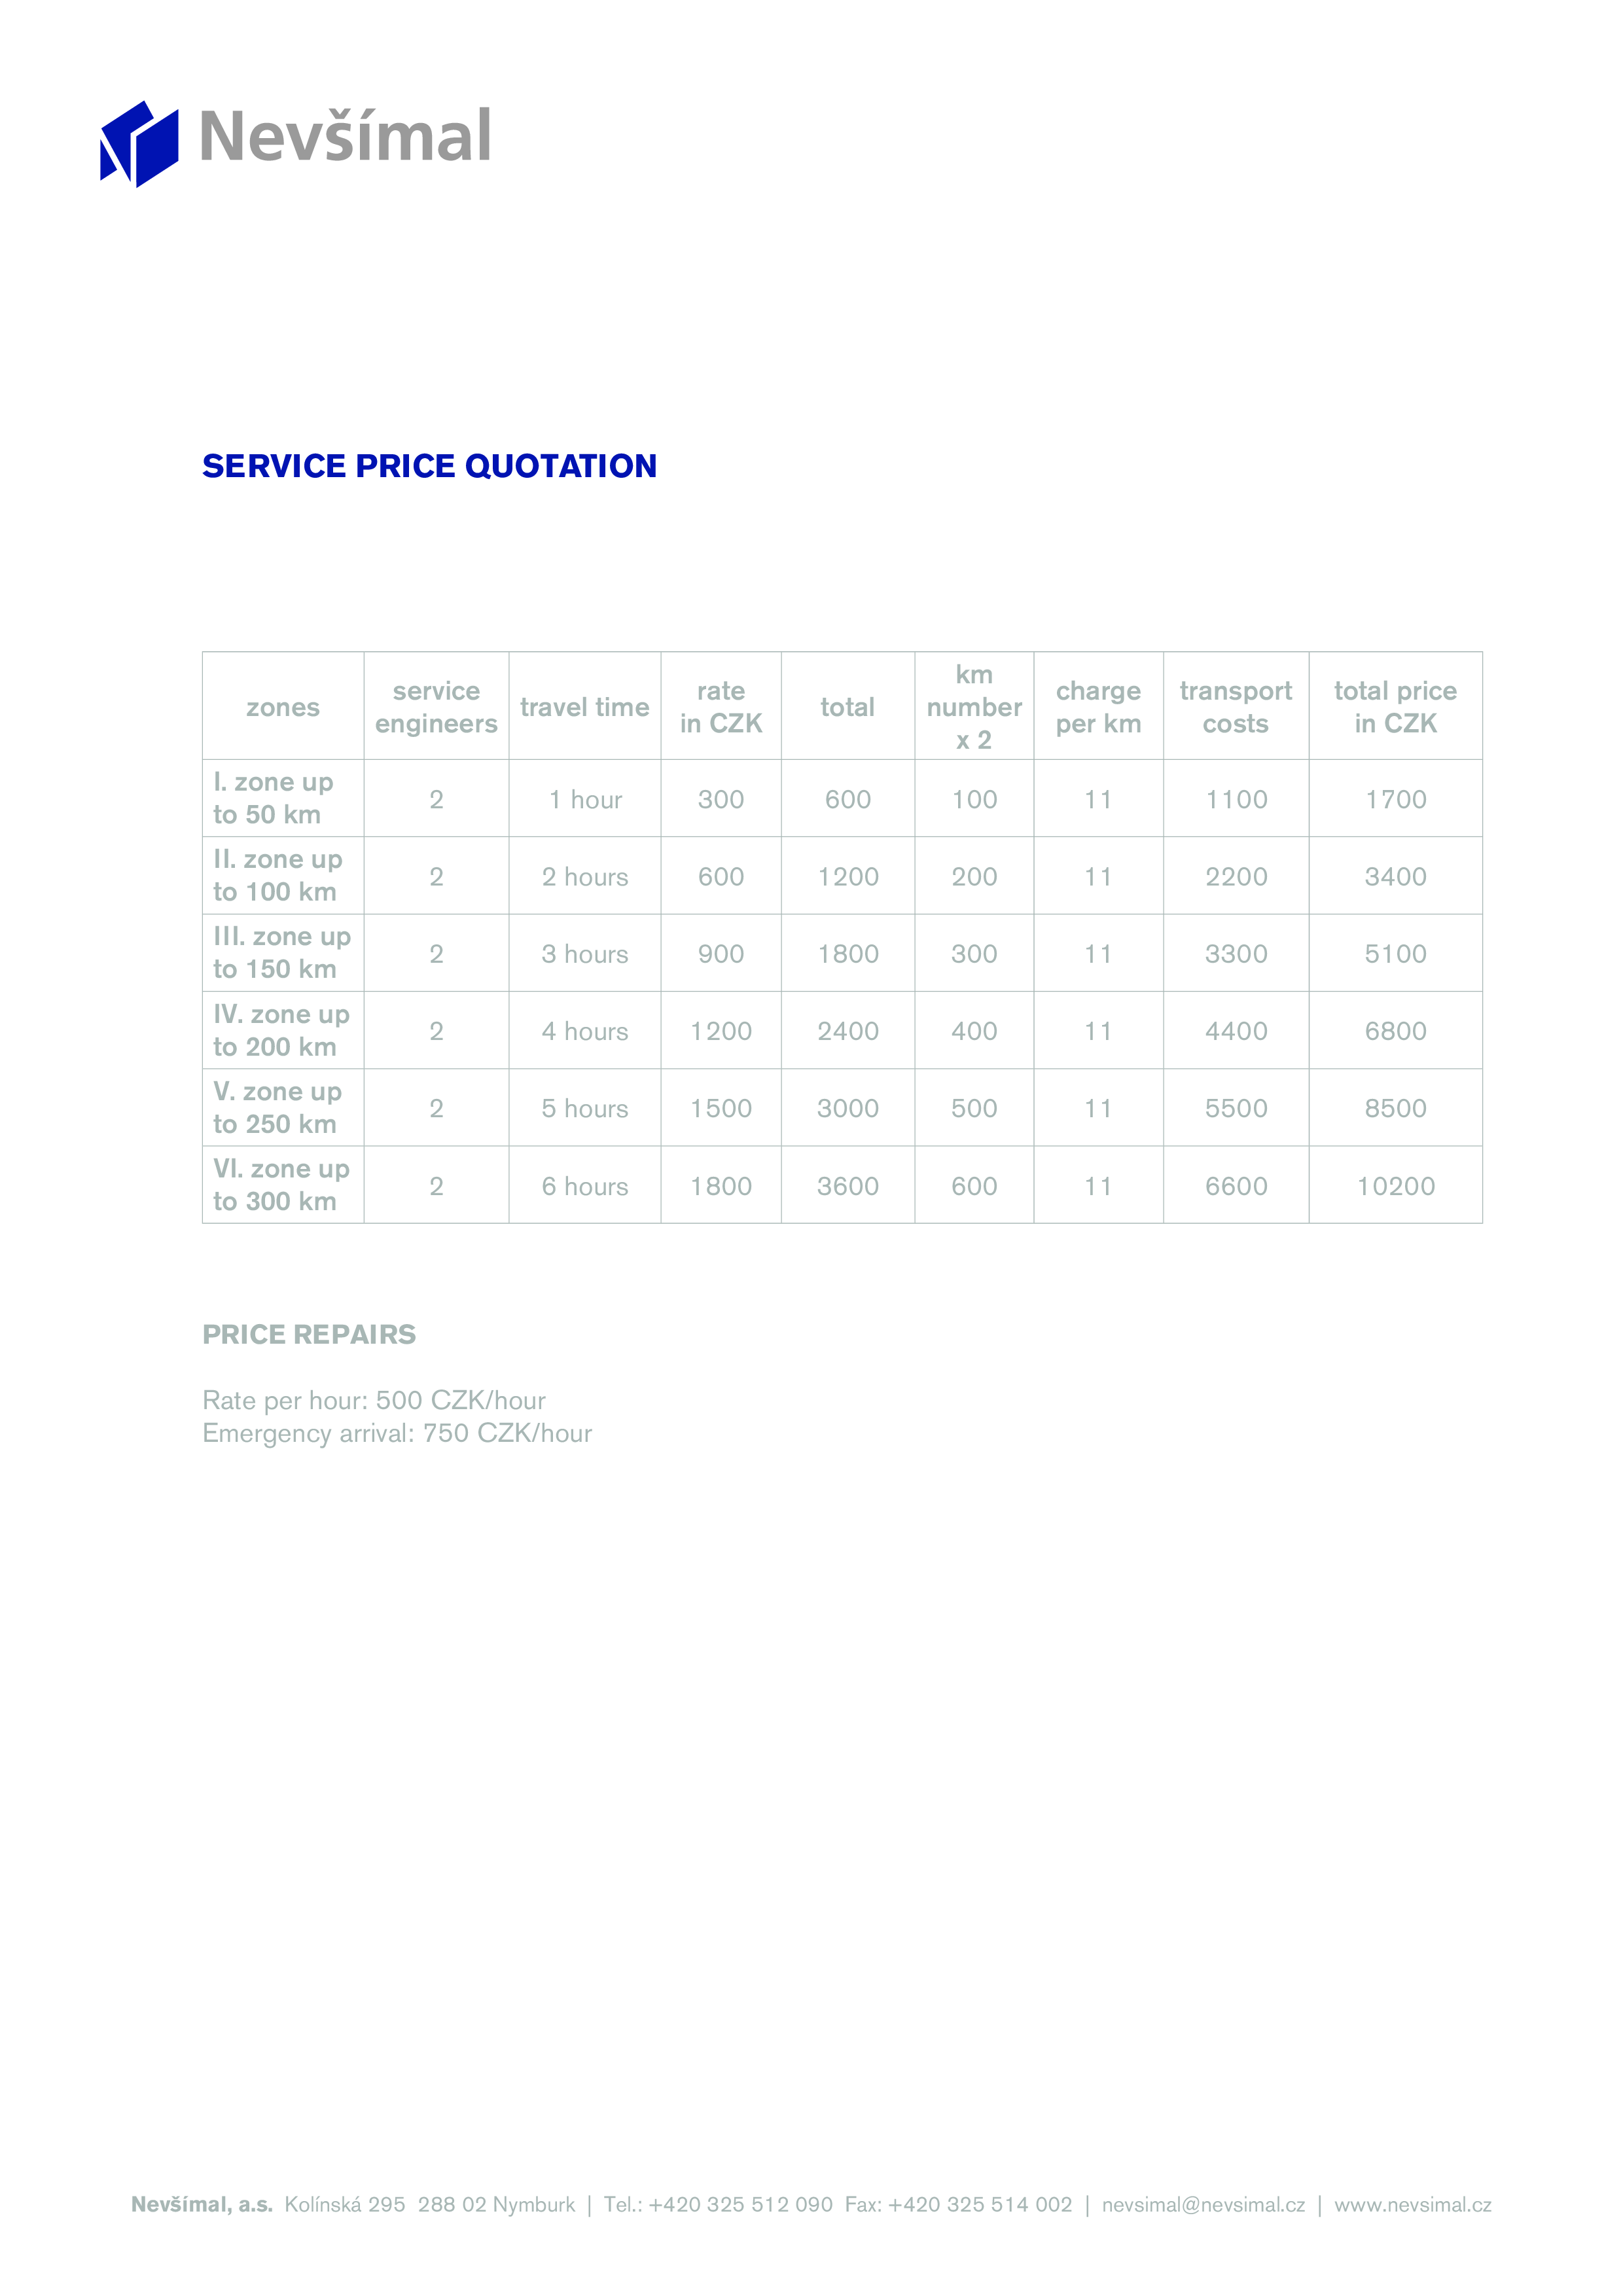 free formal service quotation templates at